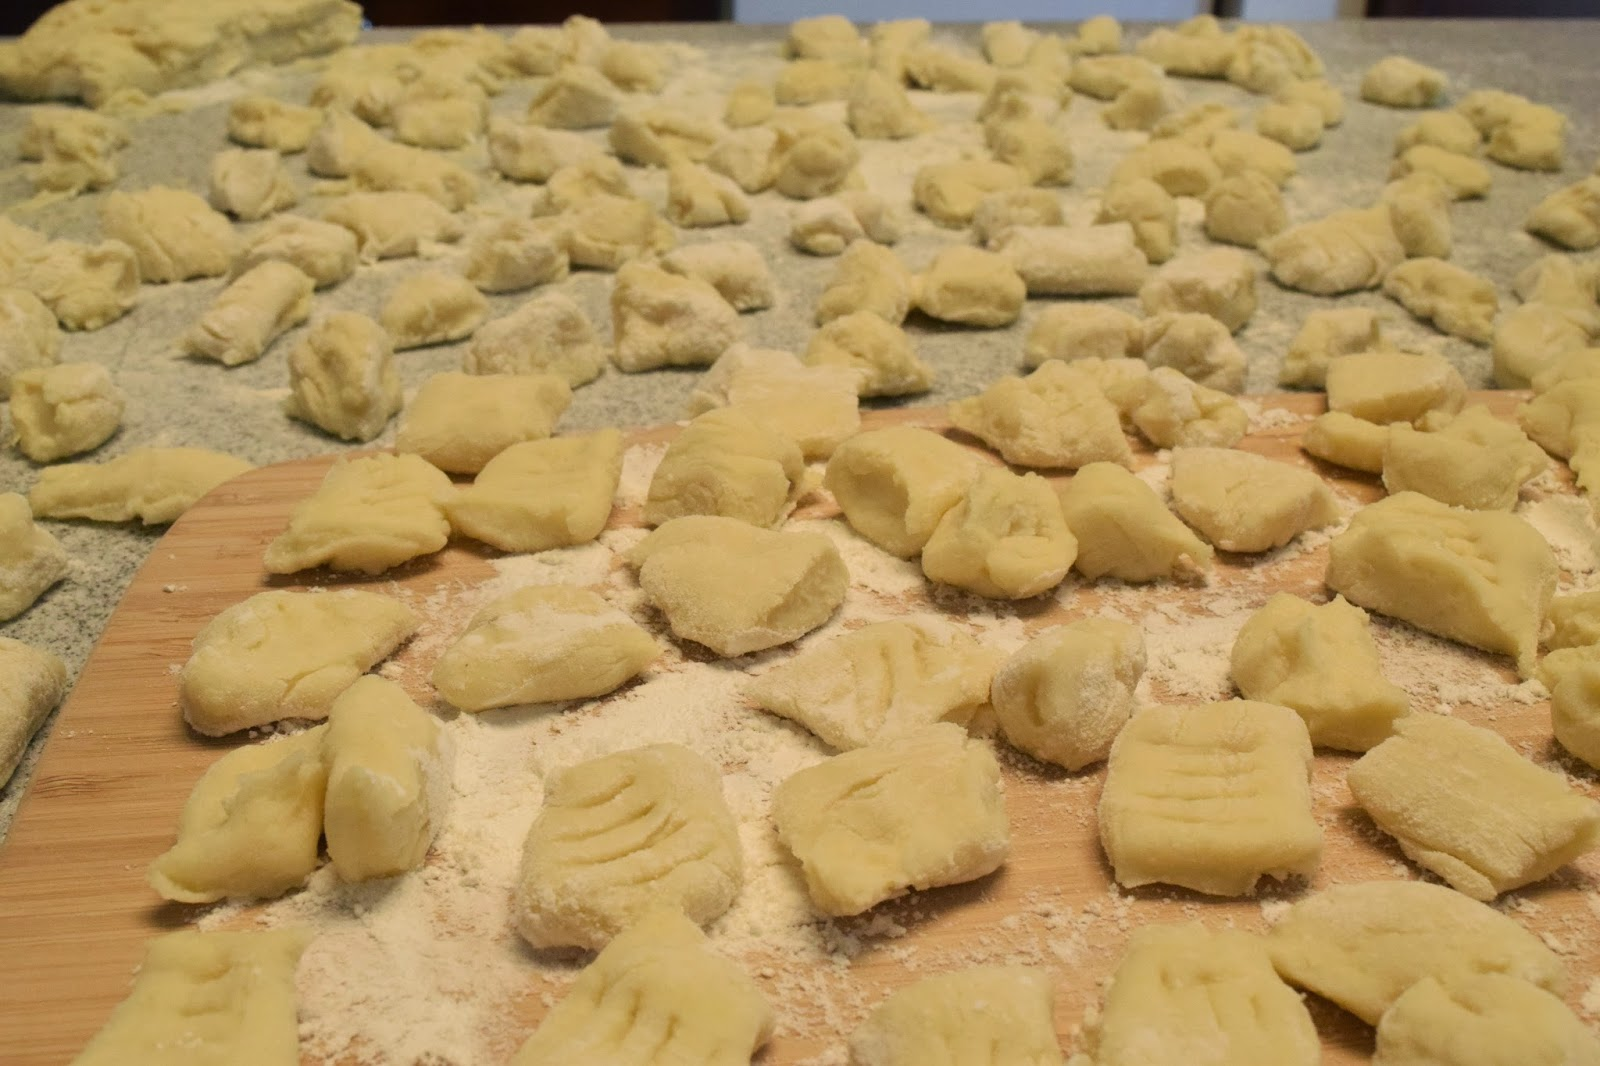 Best Ever Homemade Gnocchi - Everything you need to make delicious homemade gnocchi right in your own kitchen! | Homemade gnocchi recipe - How to make gnocchi from scratch - handmade gnocchi - homemade potato gnocchi - how to make homemade gnocchi